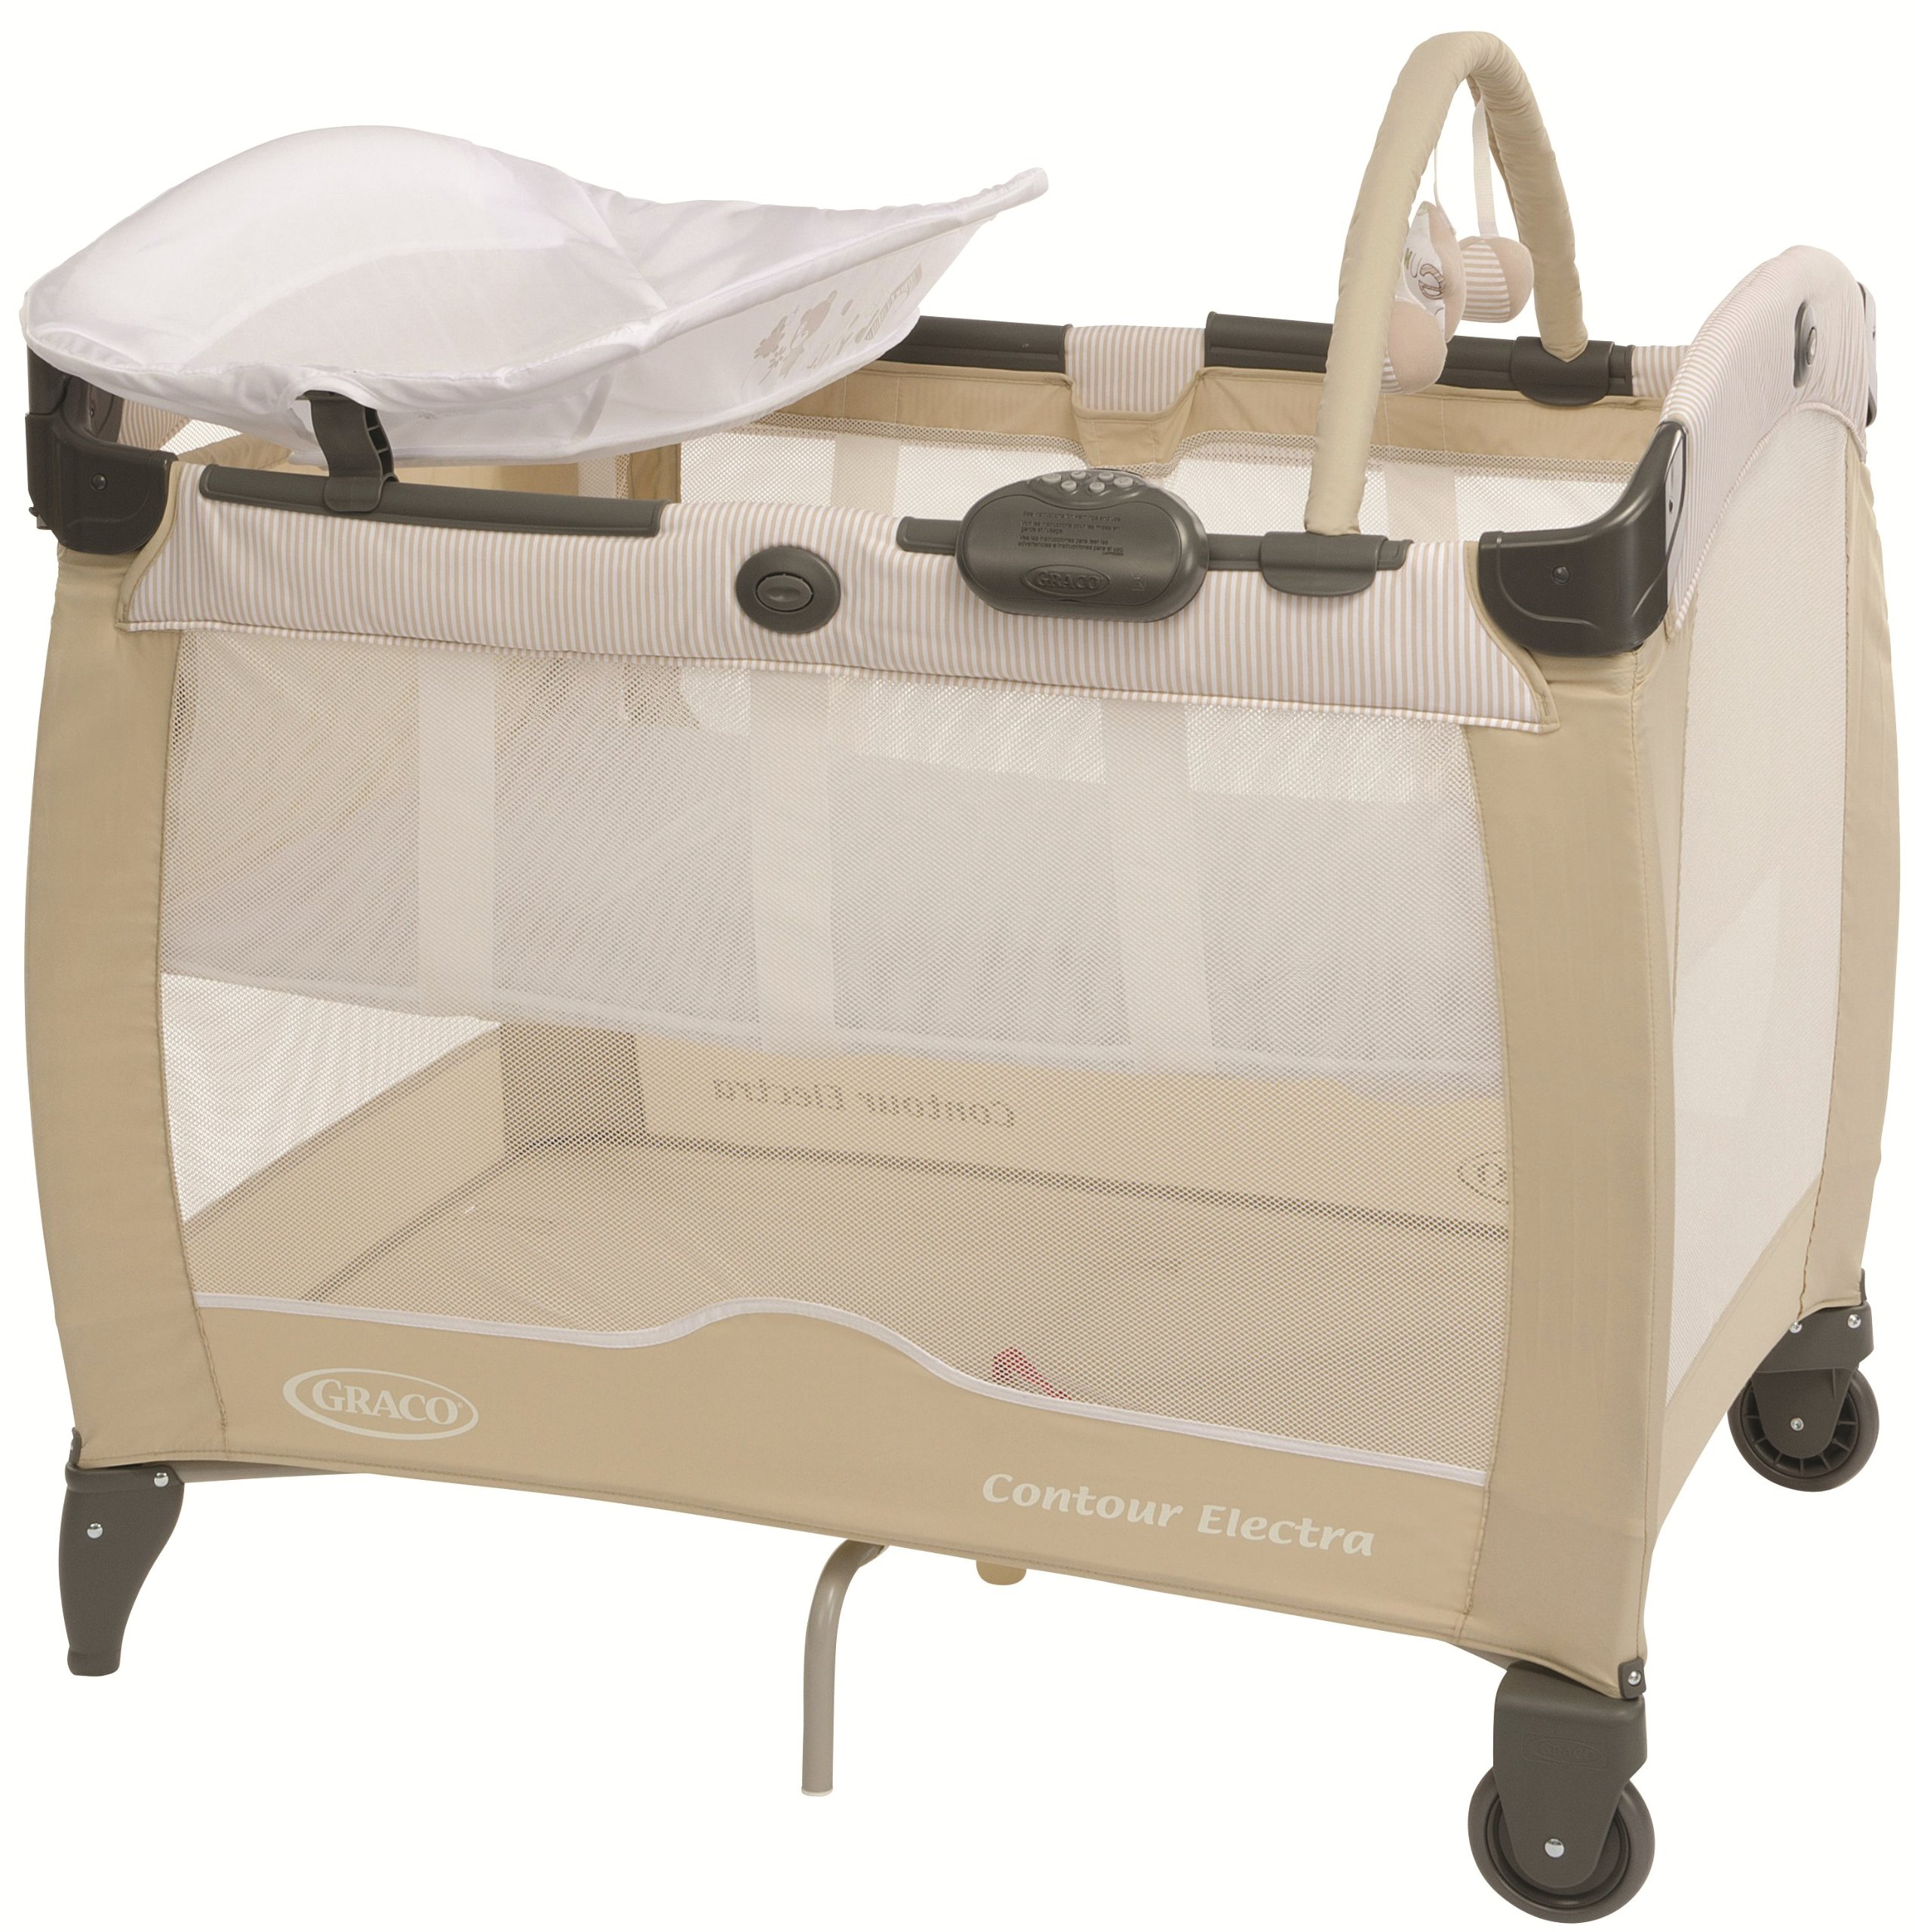 Graco Contour Electra Travel Cot - Benny and Bell Graco The bassinet is suitable from birth to 6.5 kg/3 months The bed is suitable from birth to about 3 years/15 kg Detachable control box for night light, music and vibration 1